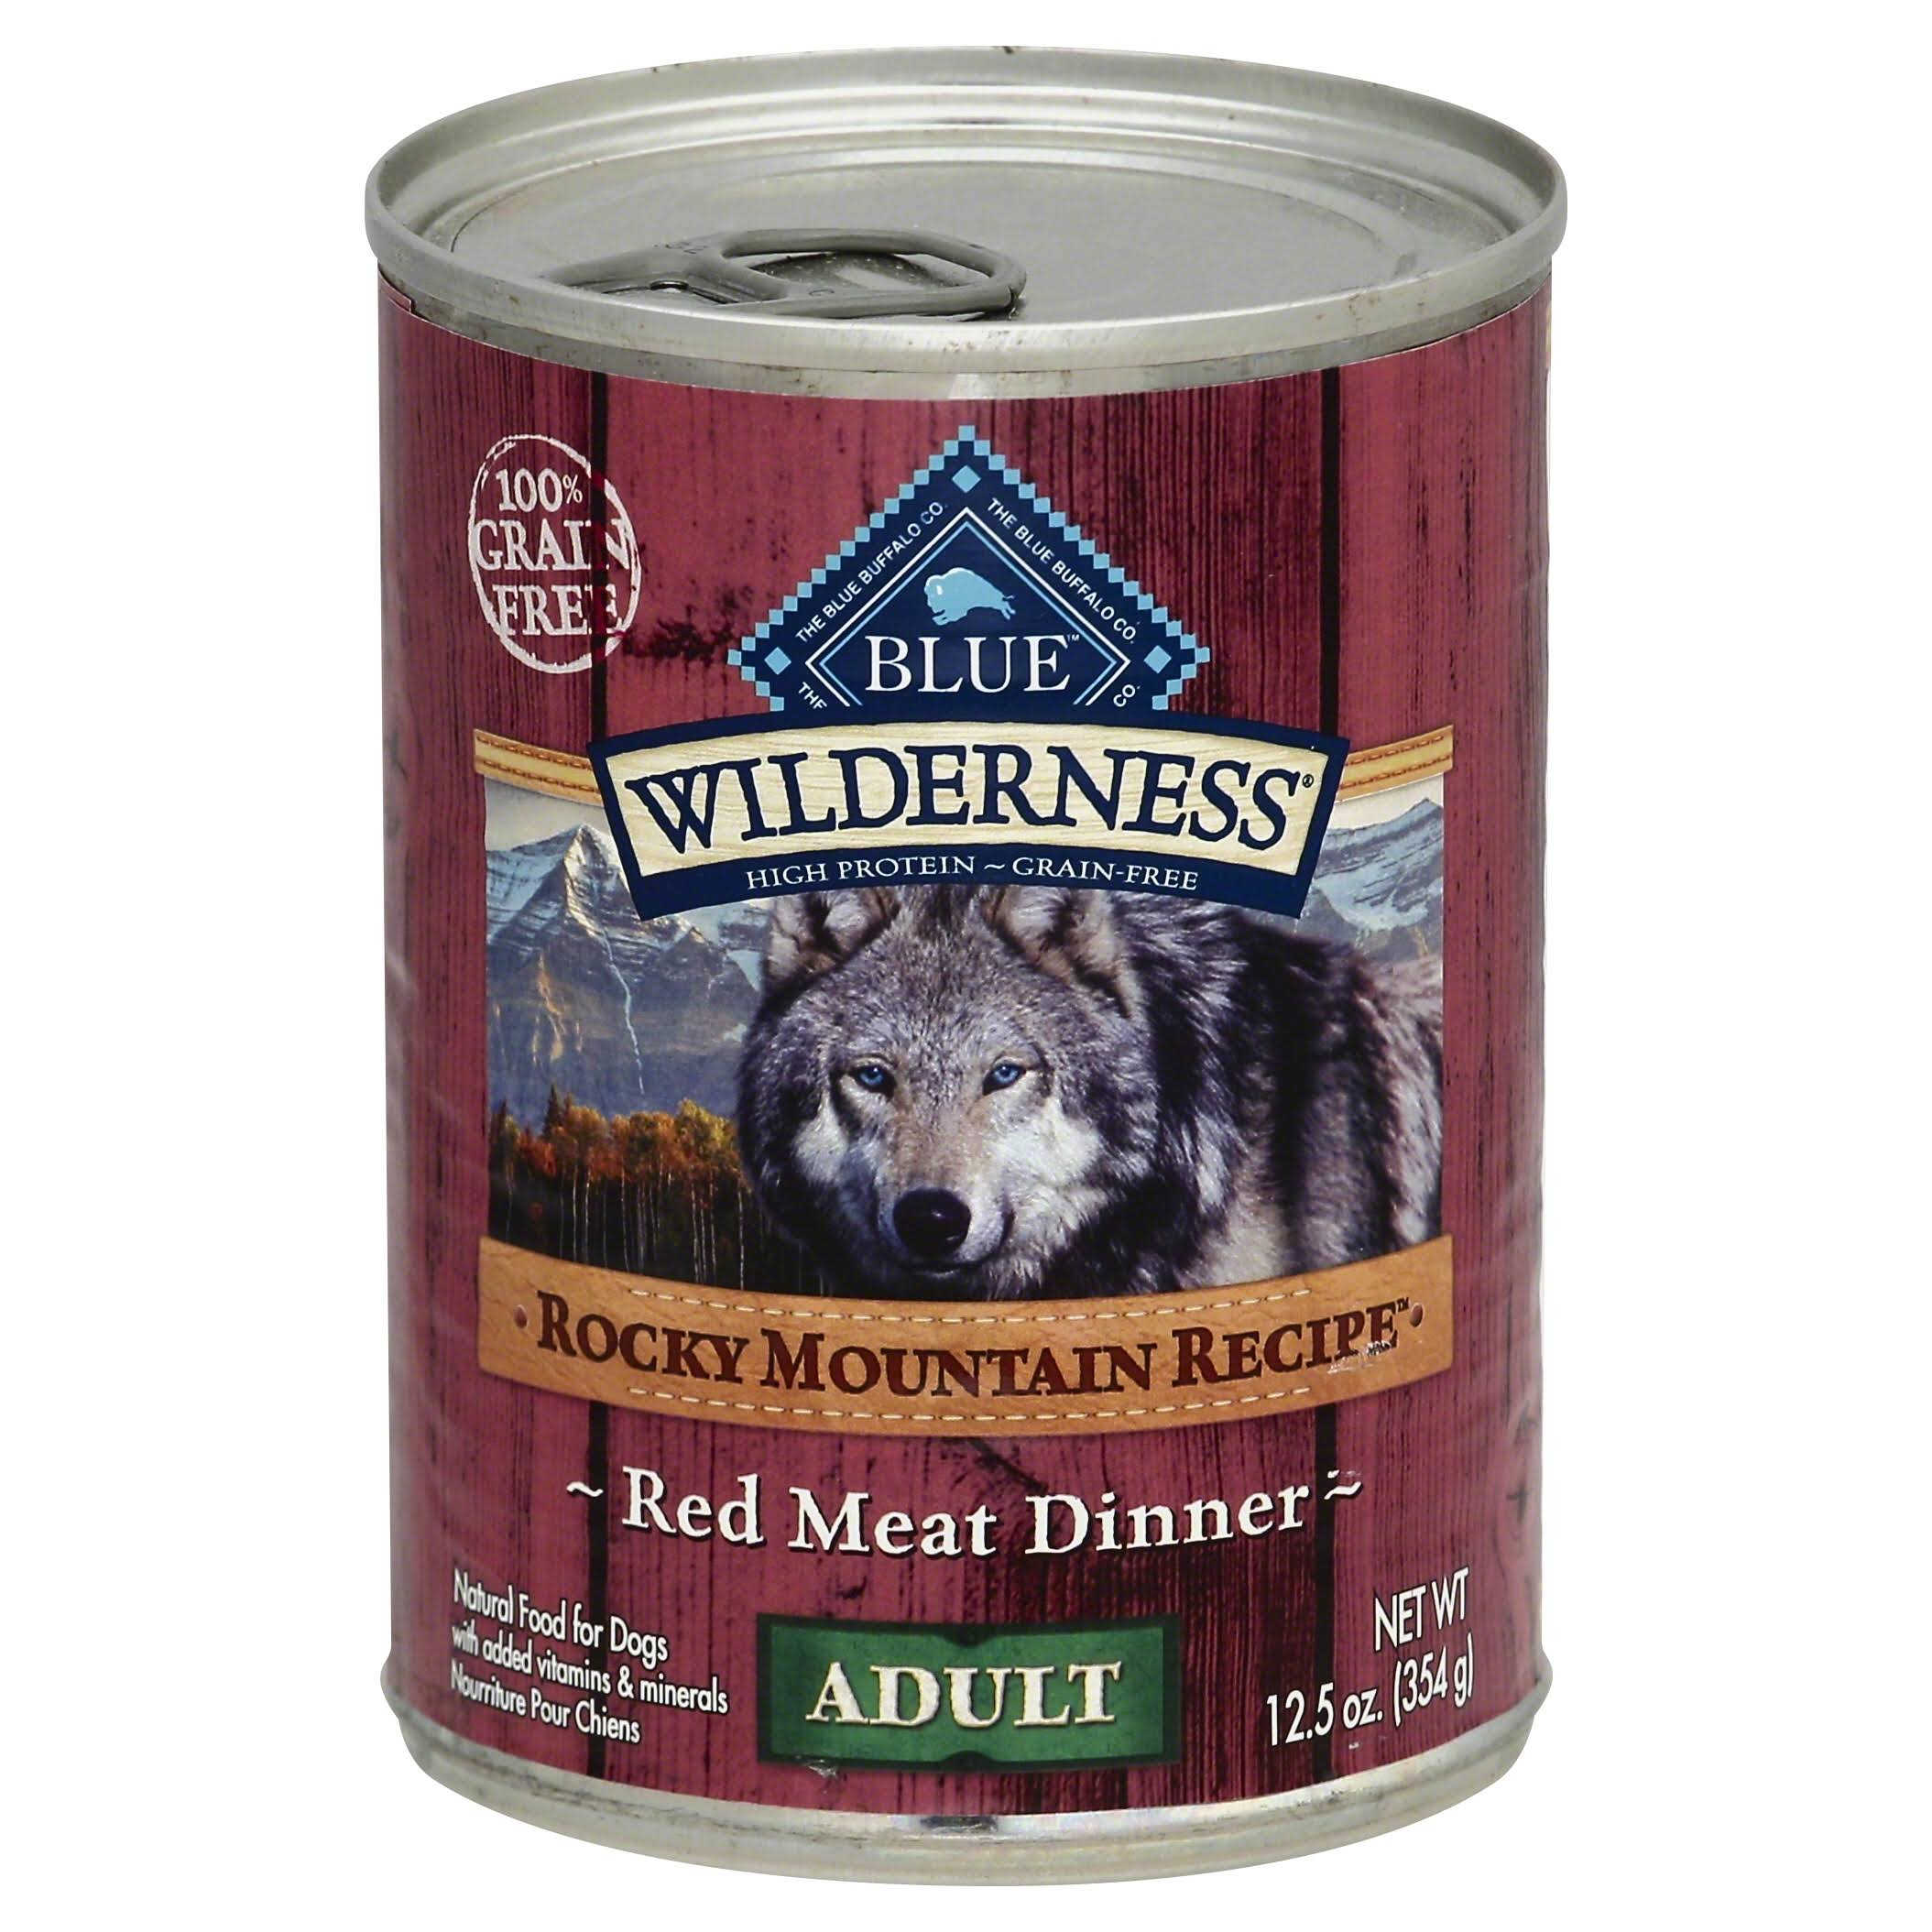 Blue Buffalo Wilderness Rocky Mountain Recipe Adult Red Meat Dog Food - 12.5oz